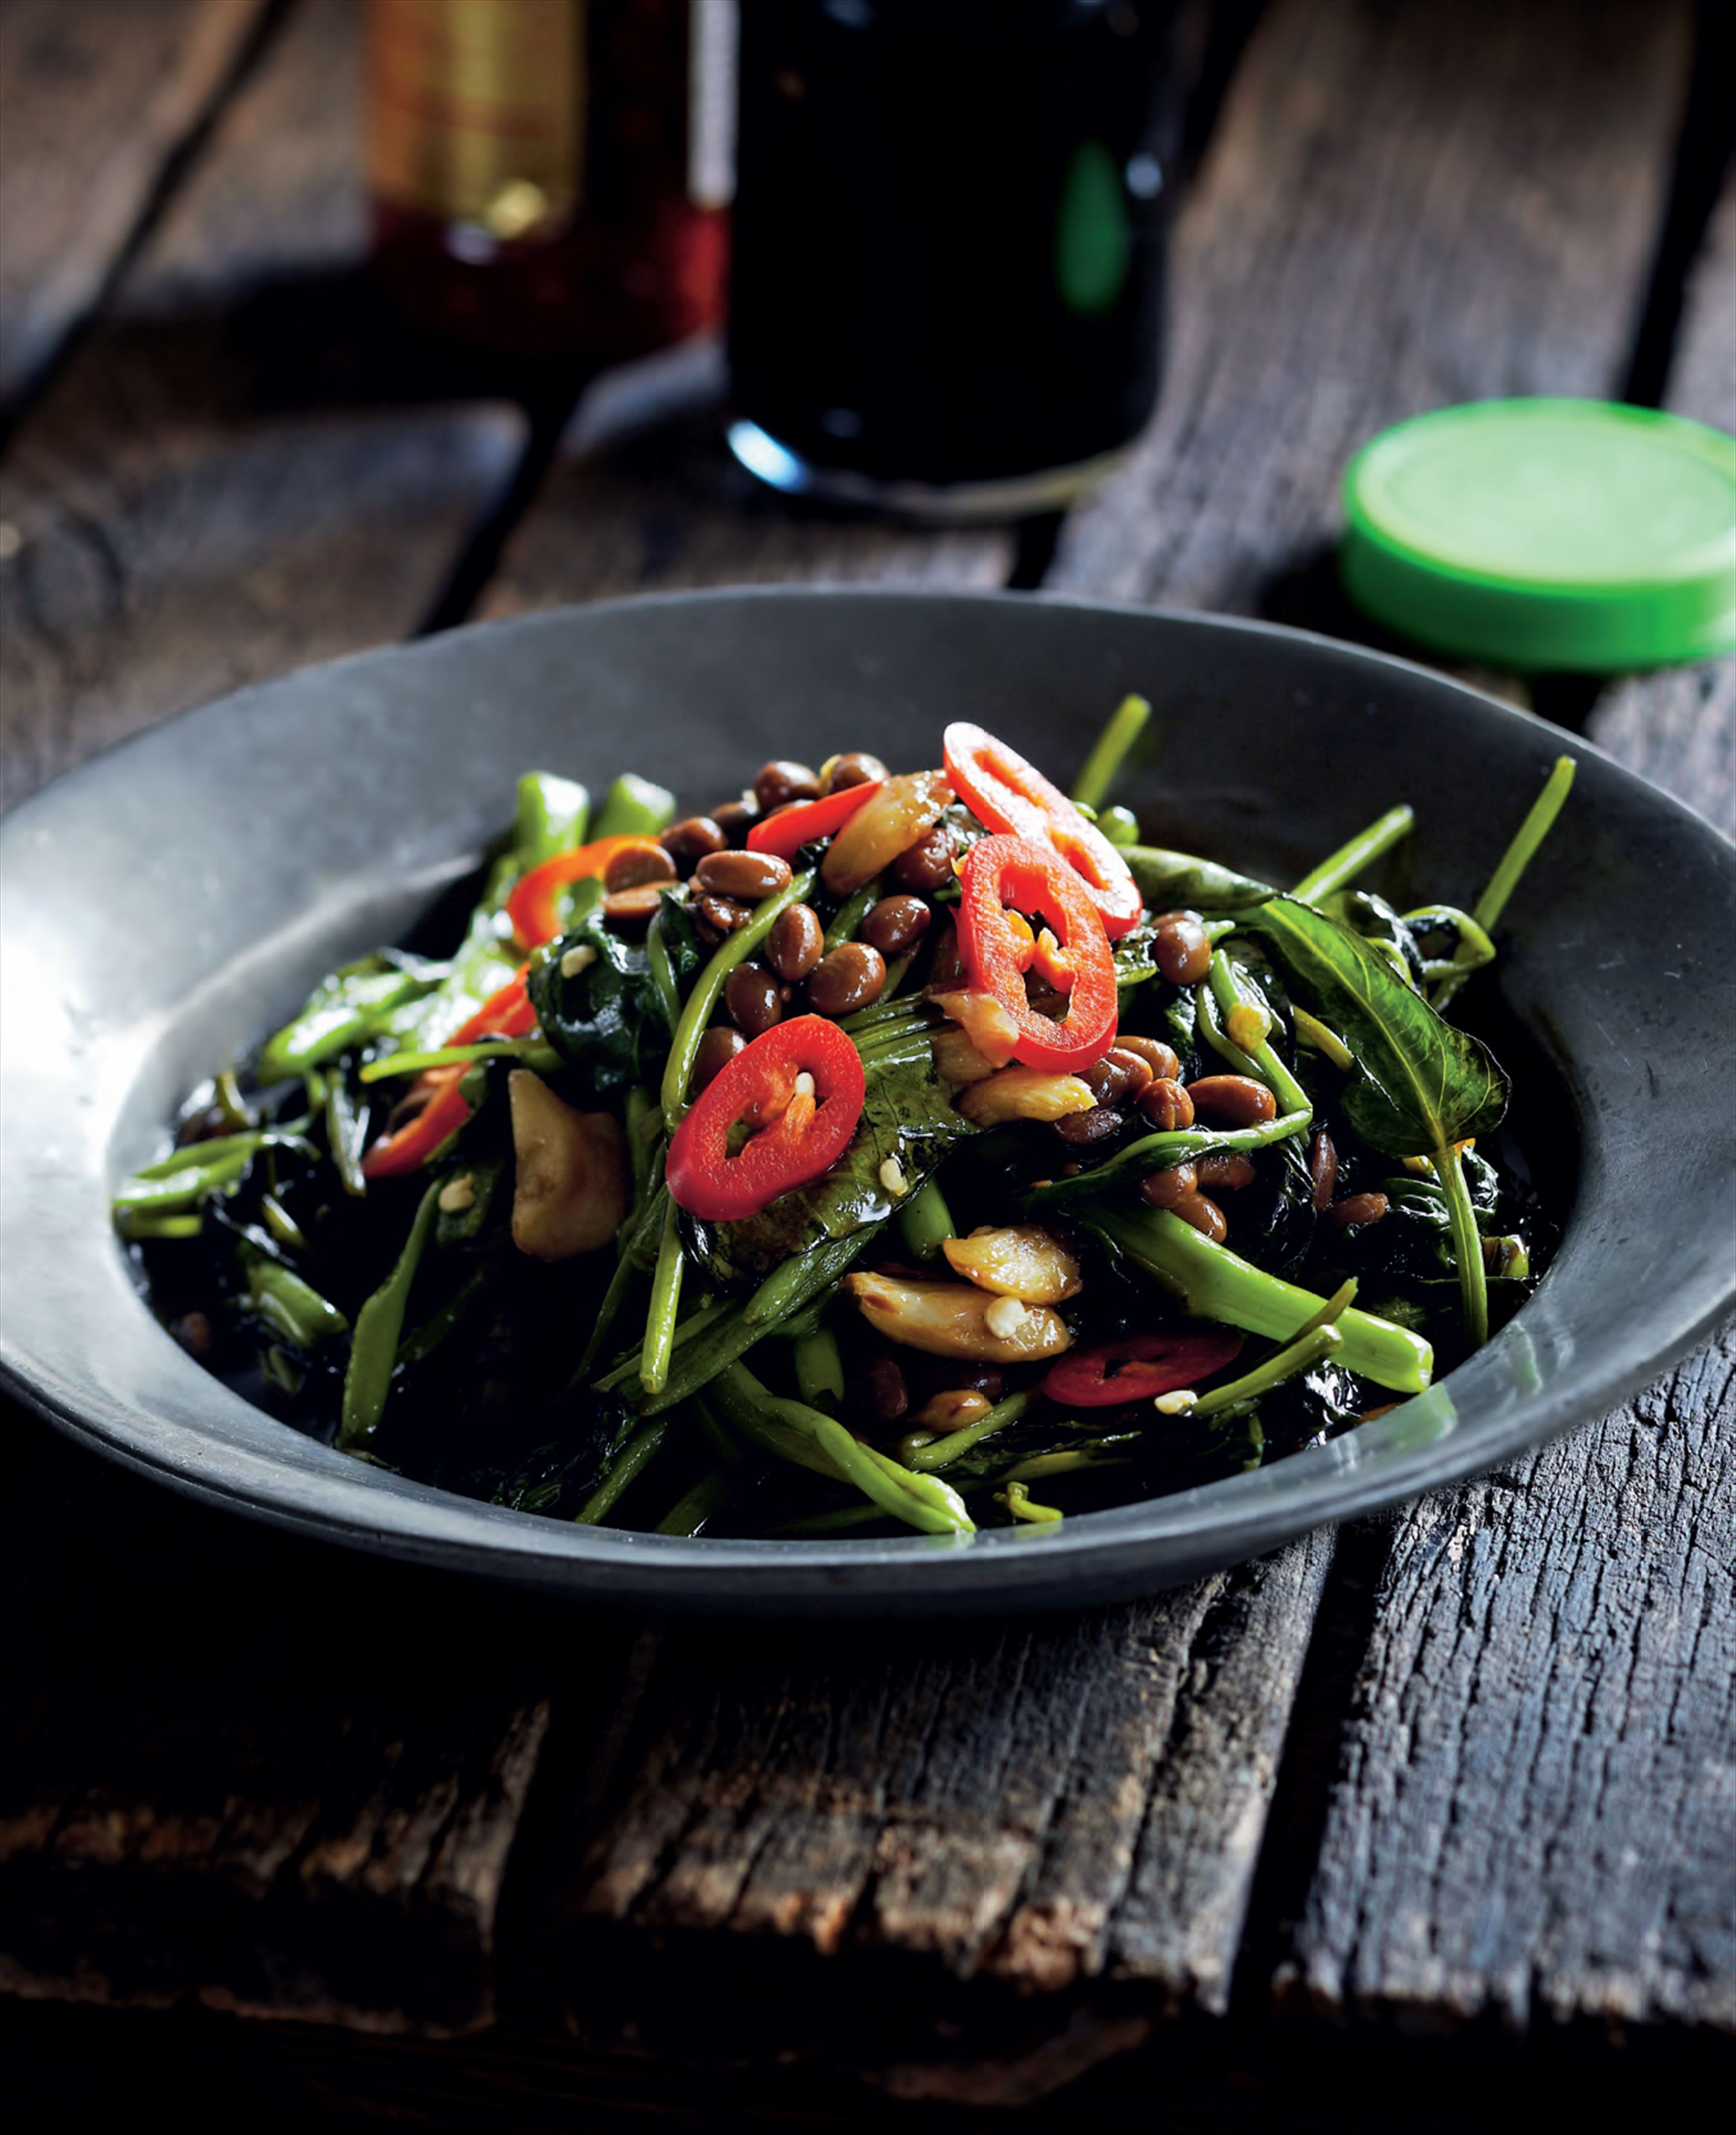 Water spinach with fermented soya beans